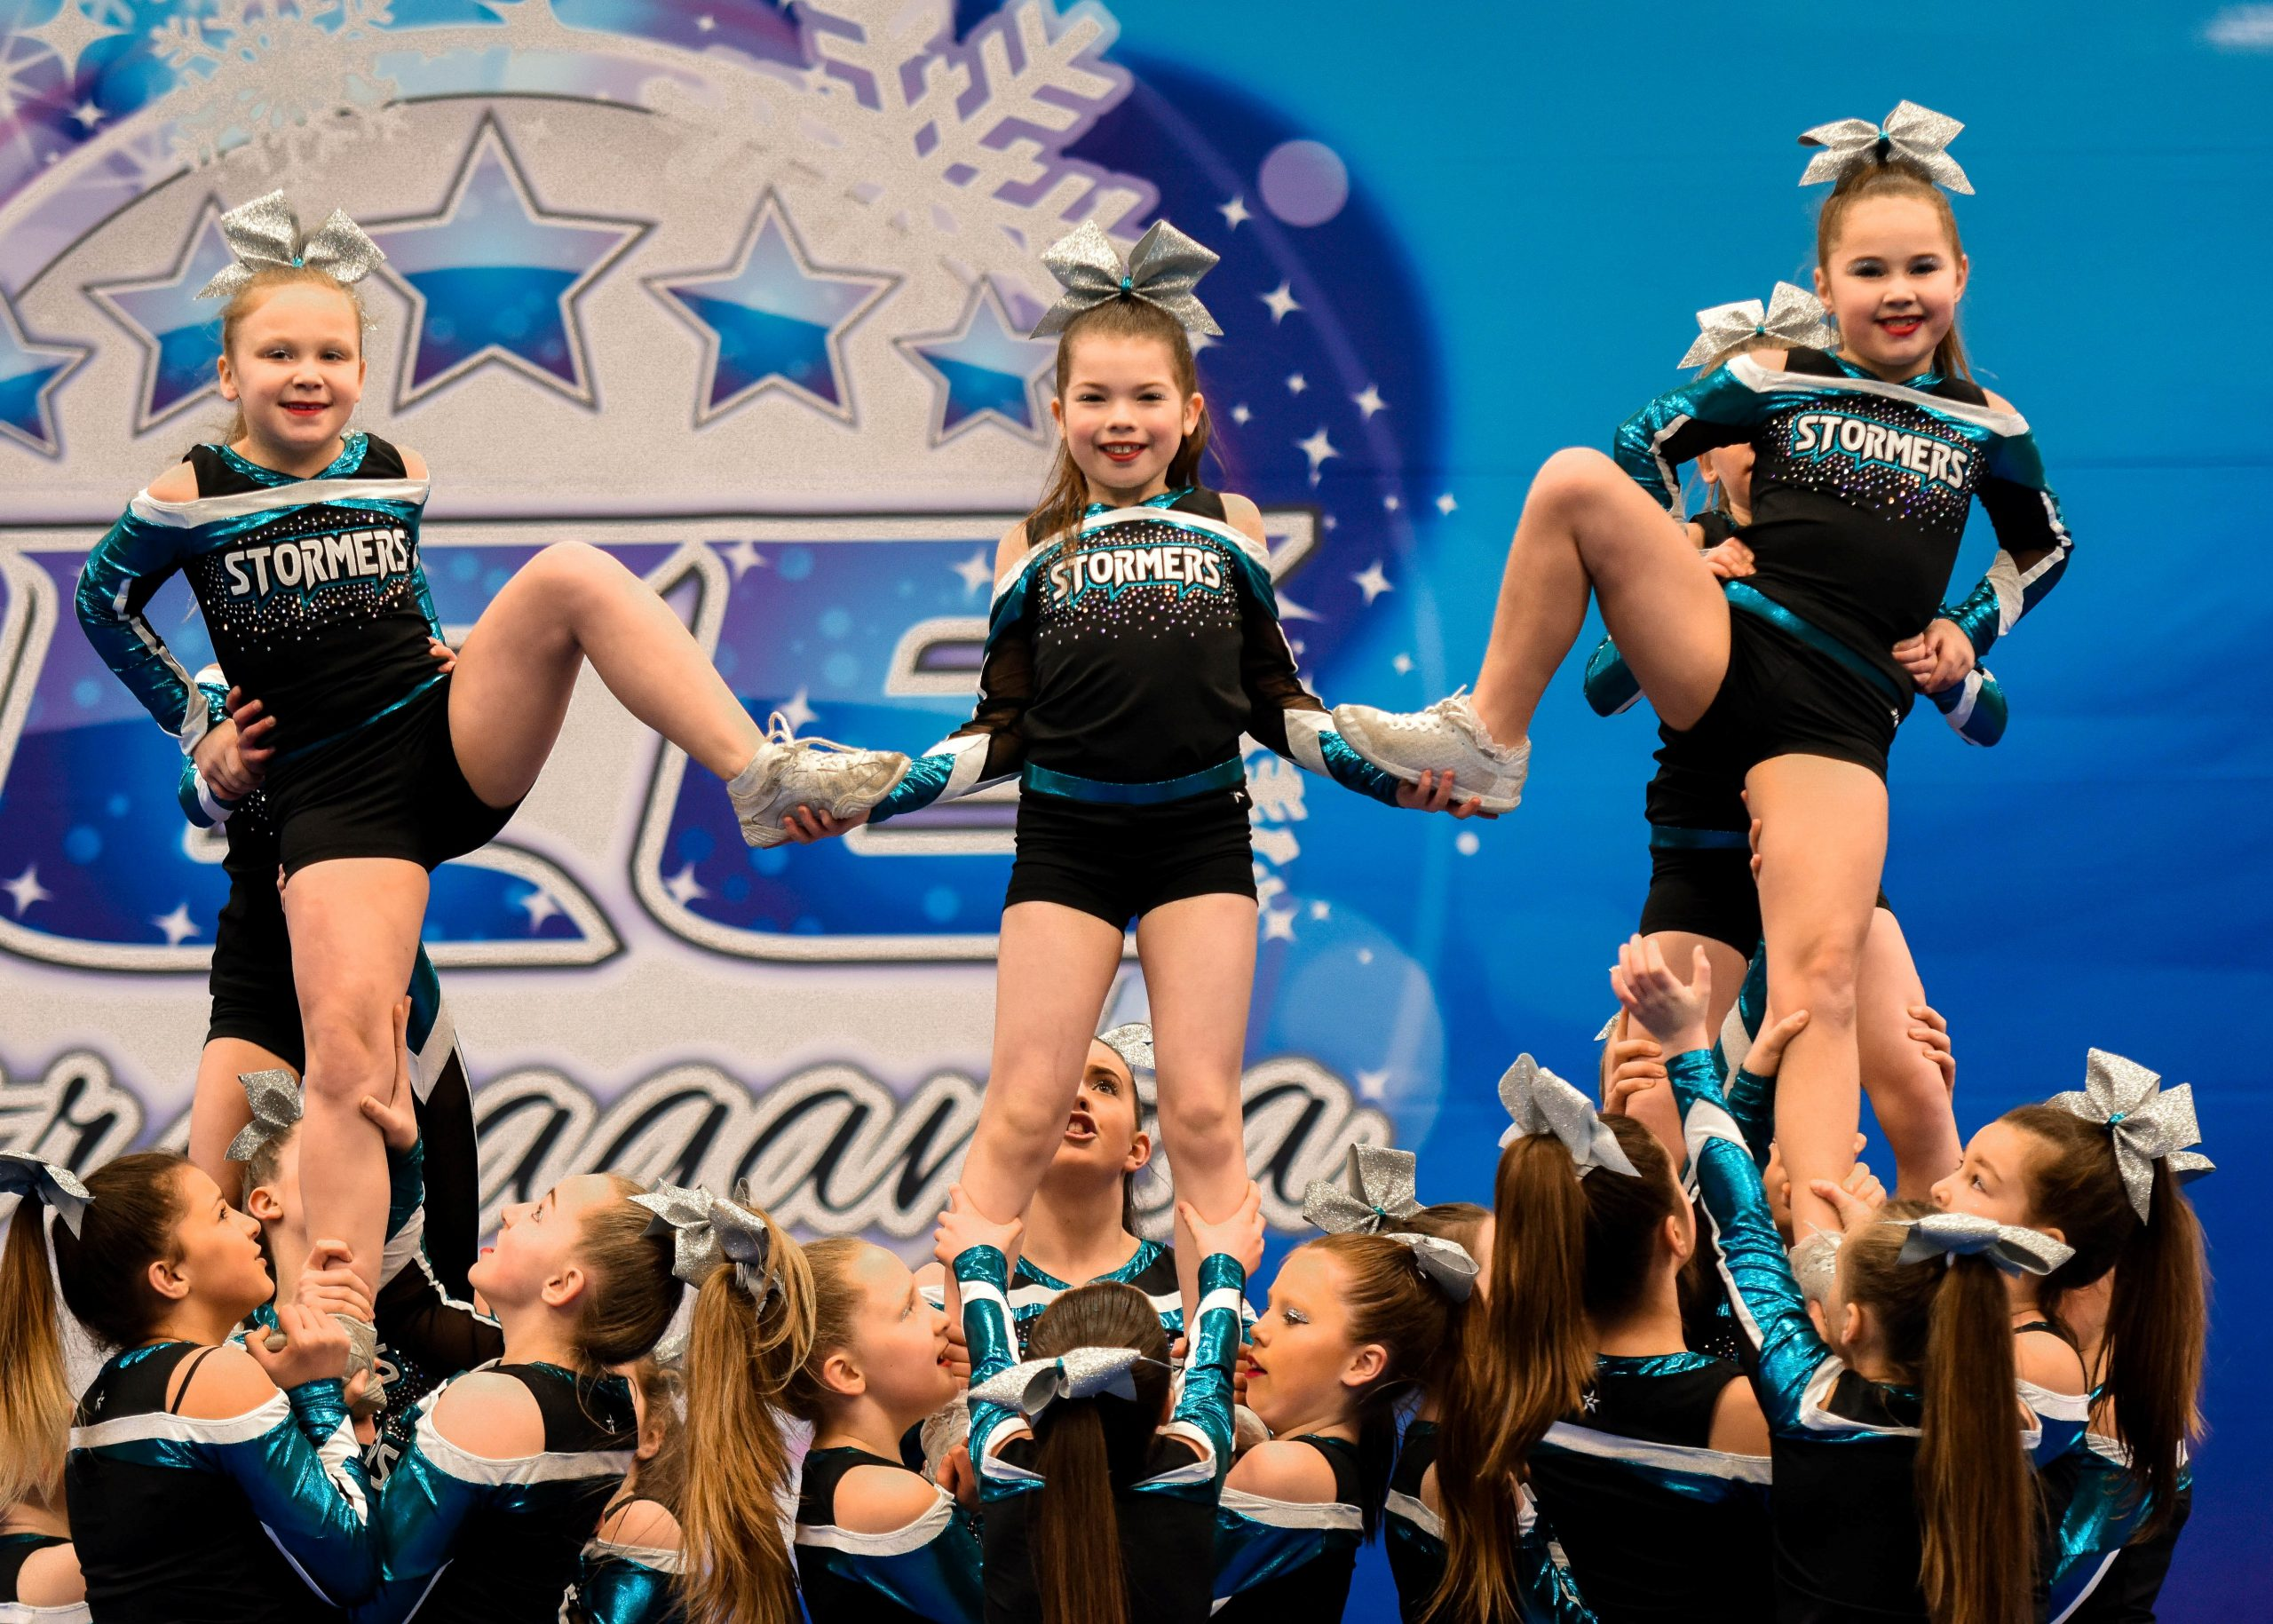 A cheer team compete in a pyramid at Incredibly Cool Events